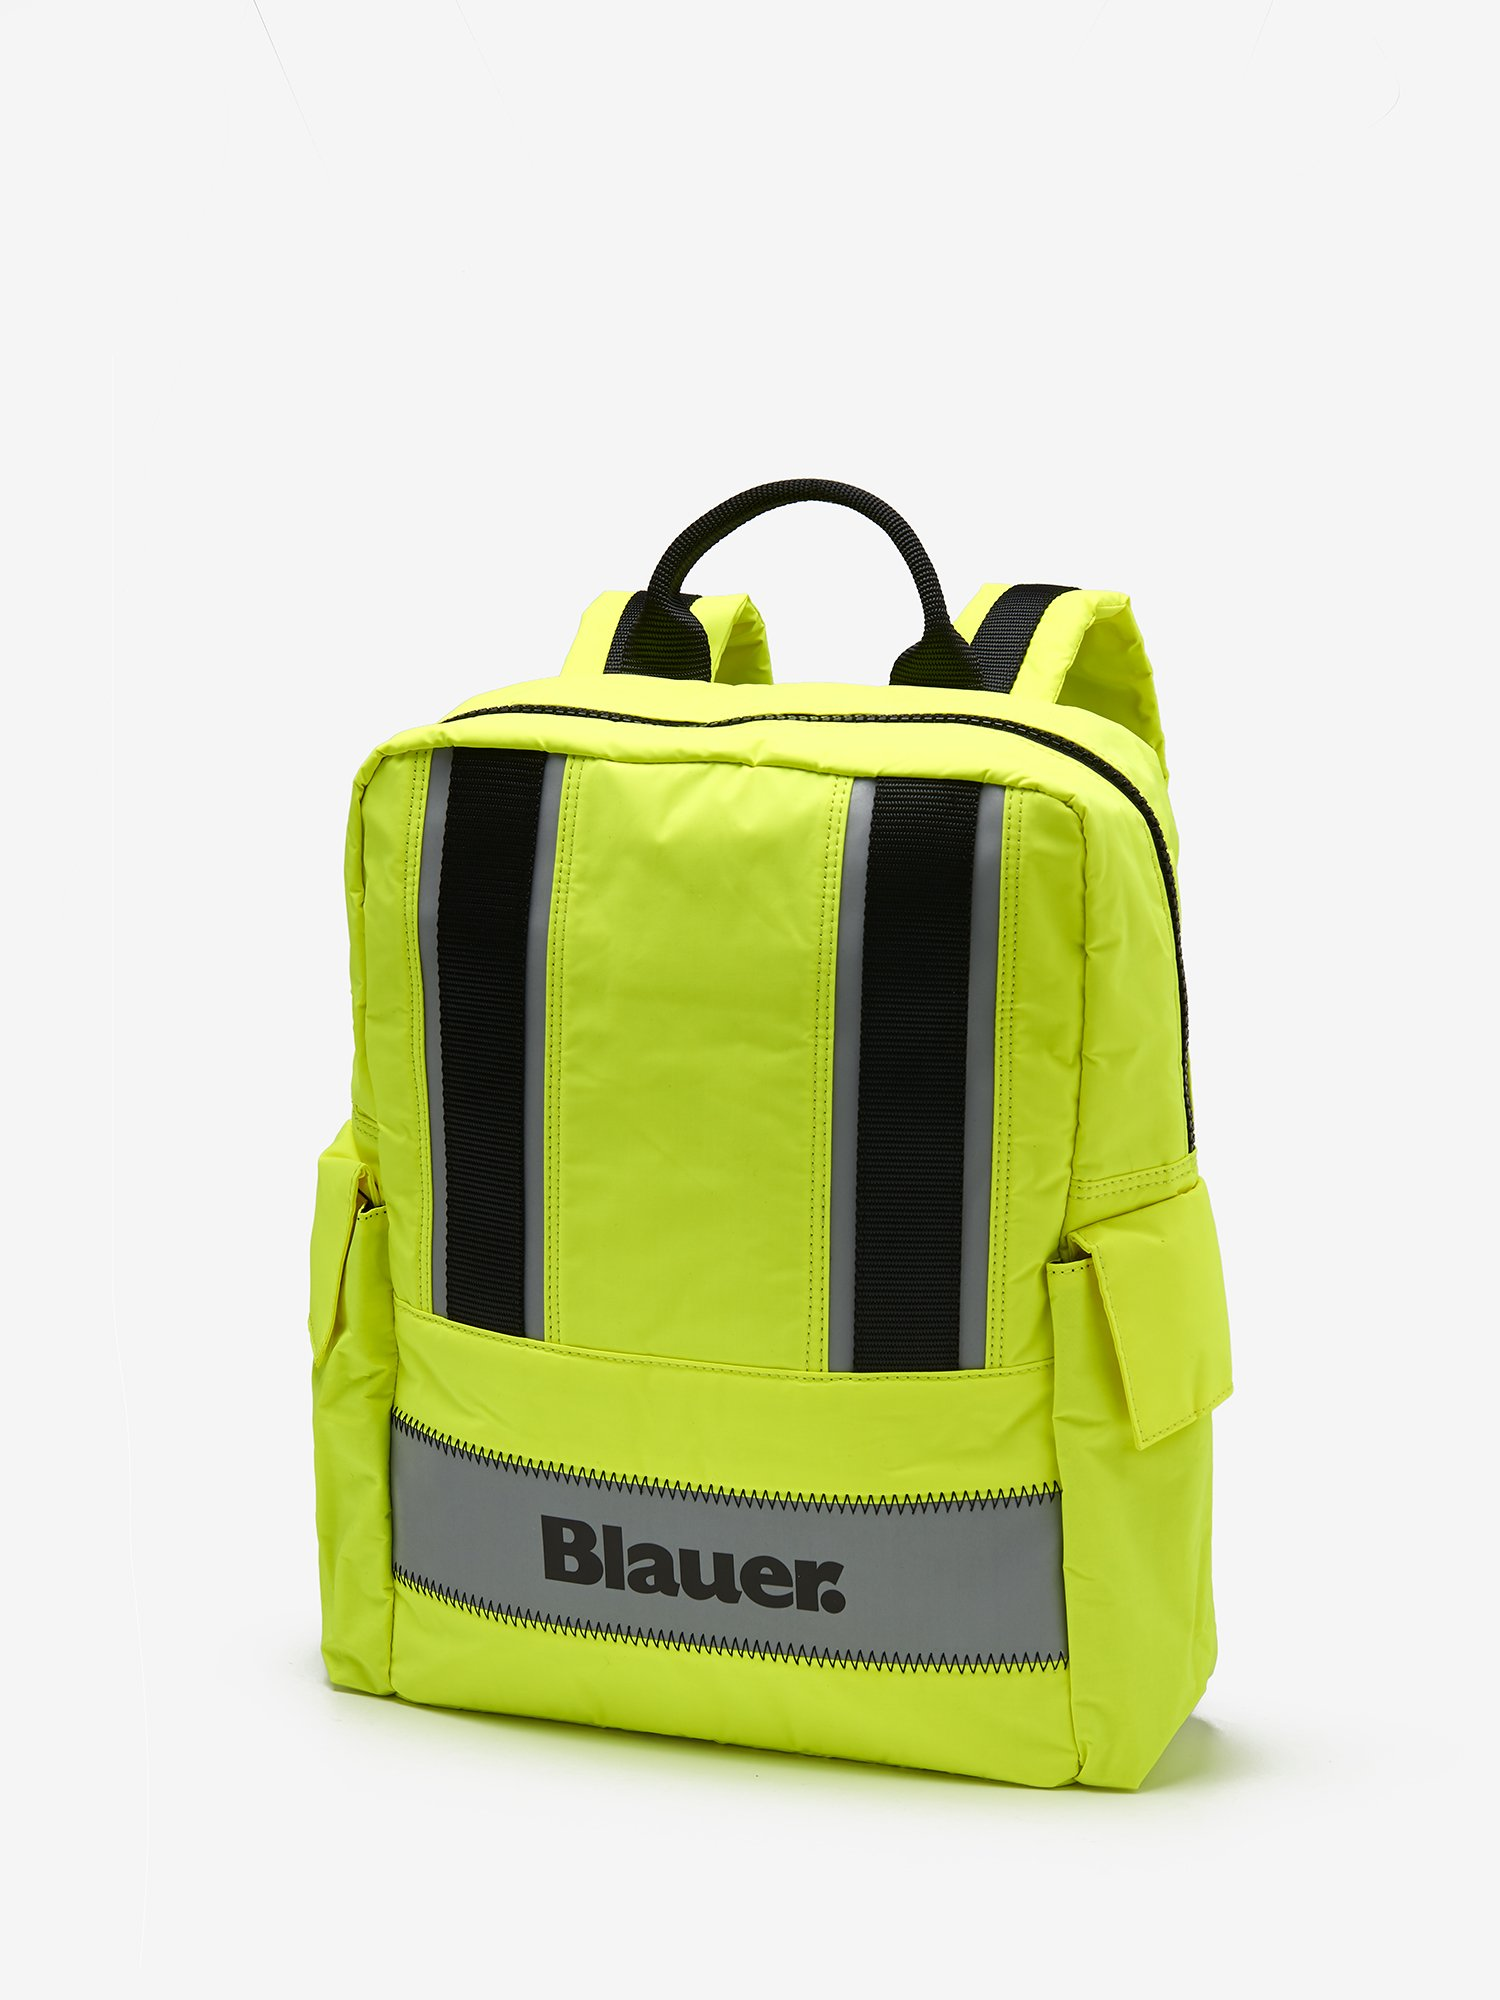 Blauer - HIGH VISIBILITY ACID BACKPACK - Mineral Yellow - Blauer